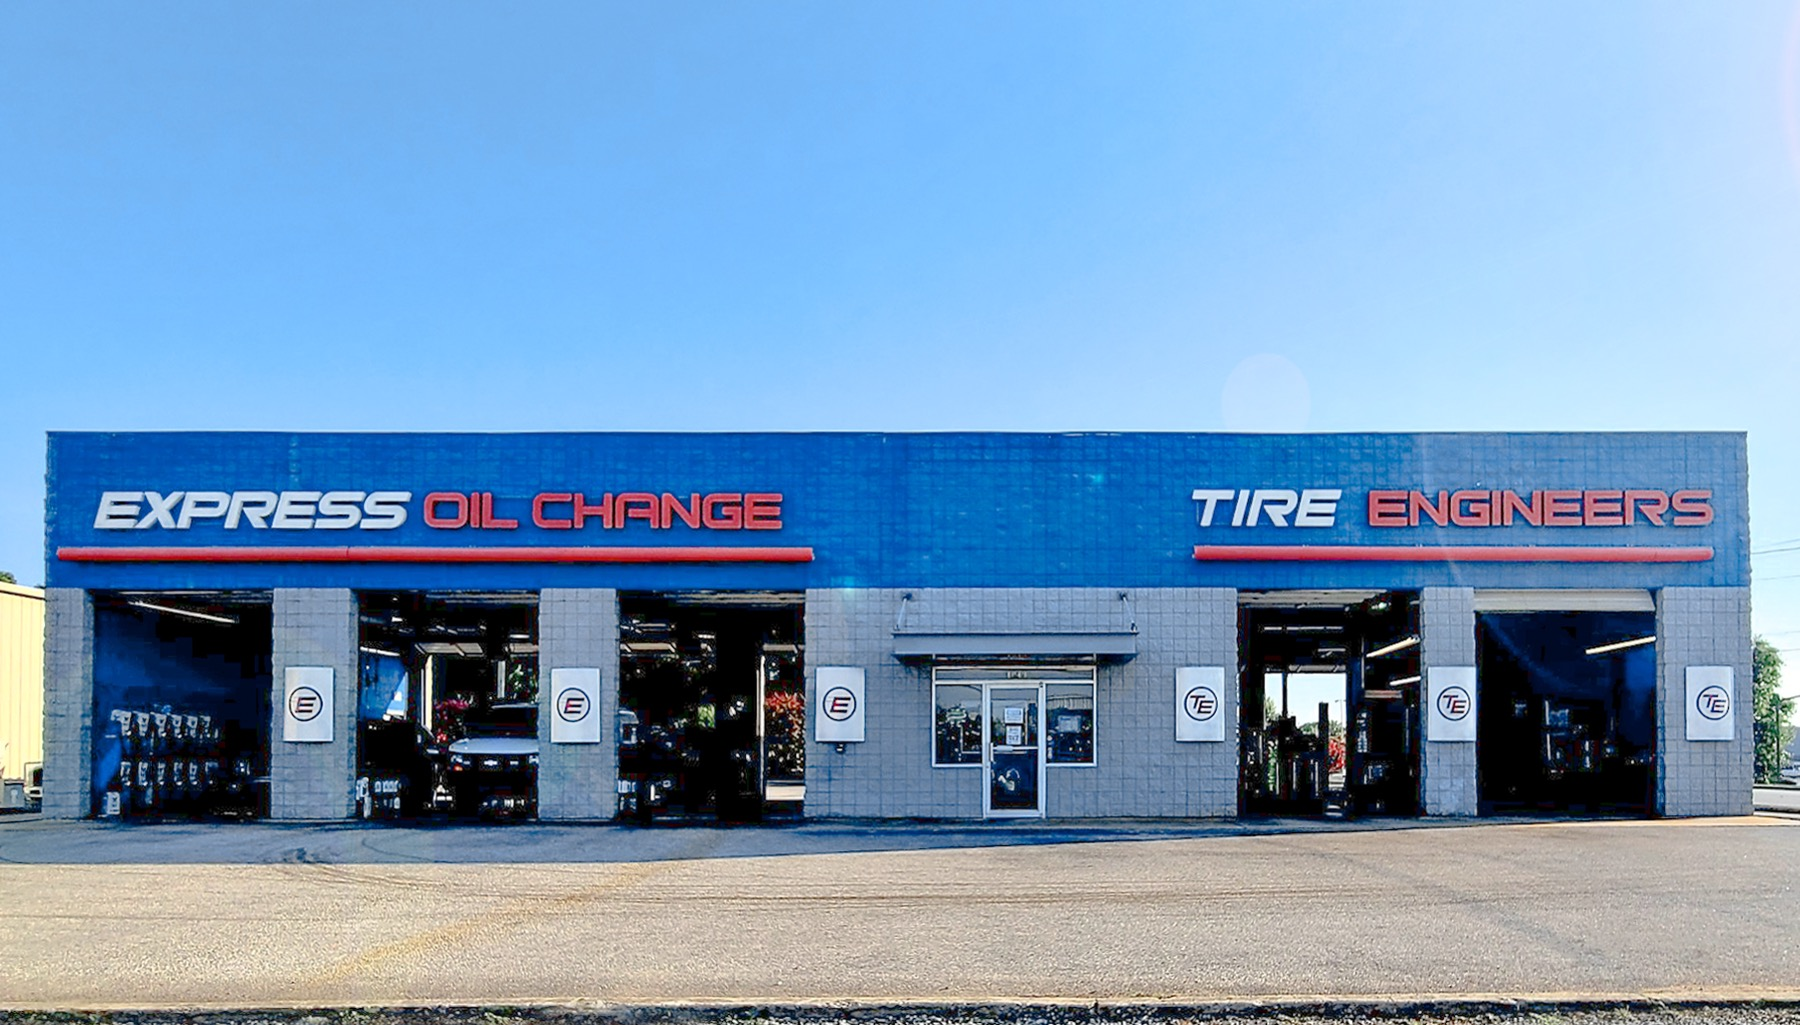 Express Oil Change & Tire Engineers at Athens, AL - East store